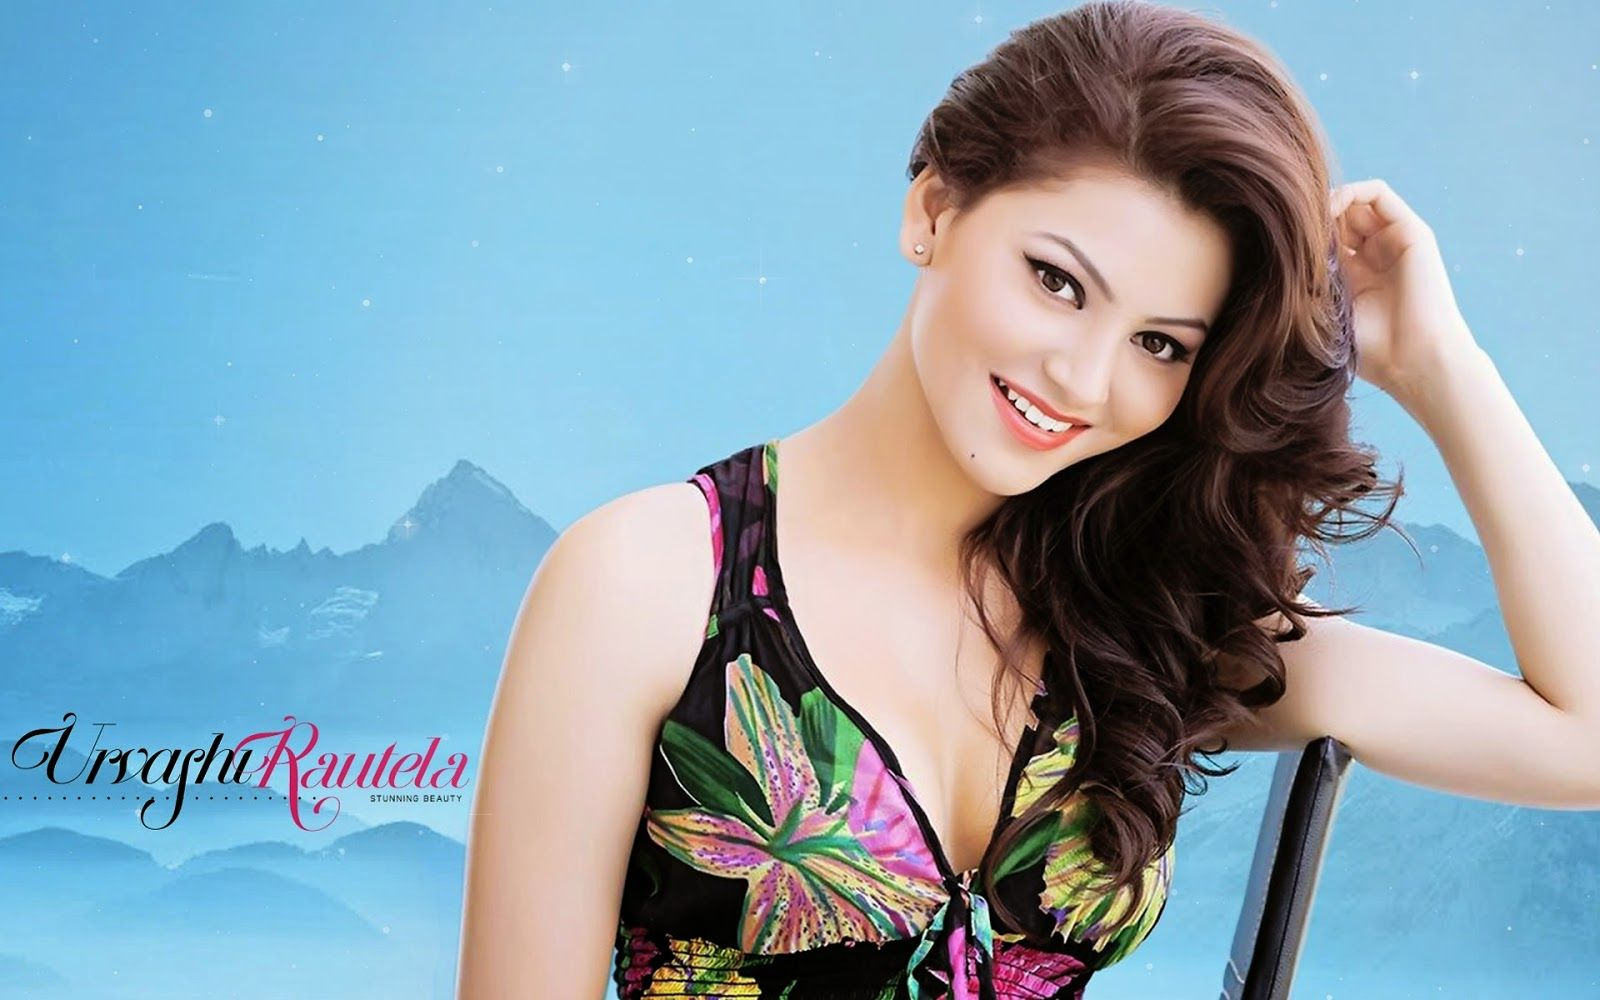 Urvashi Rautela  IMAGES, GIF, ANIMATED GIF, WALLPAPER, STICKER FOR WHATSAPP & FACEBOOK